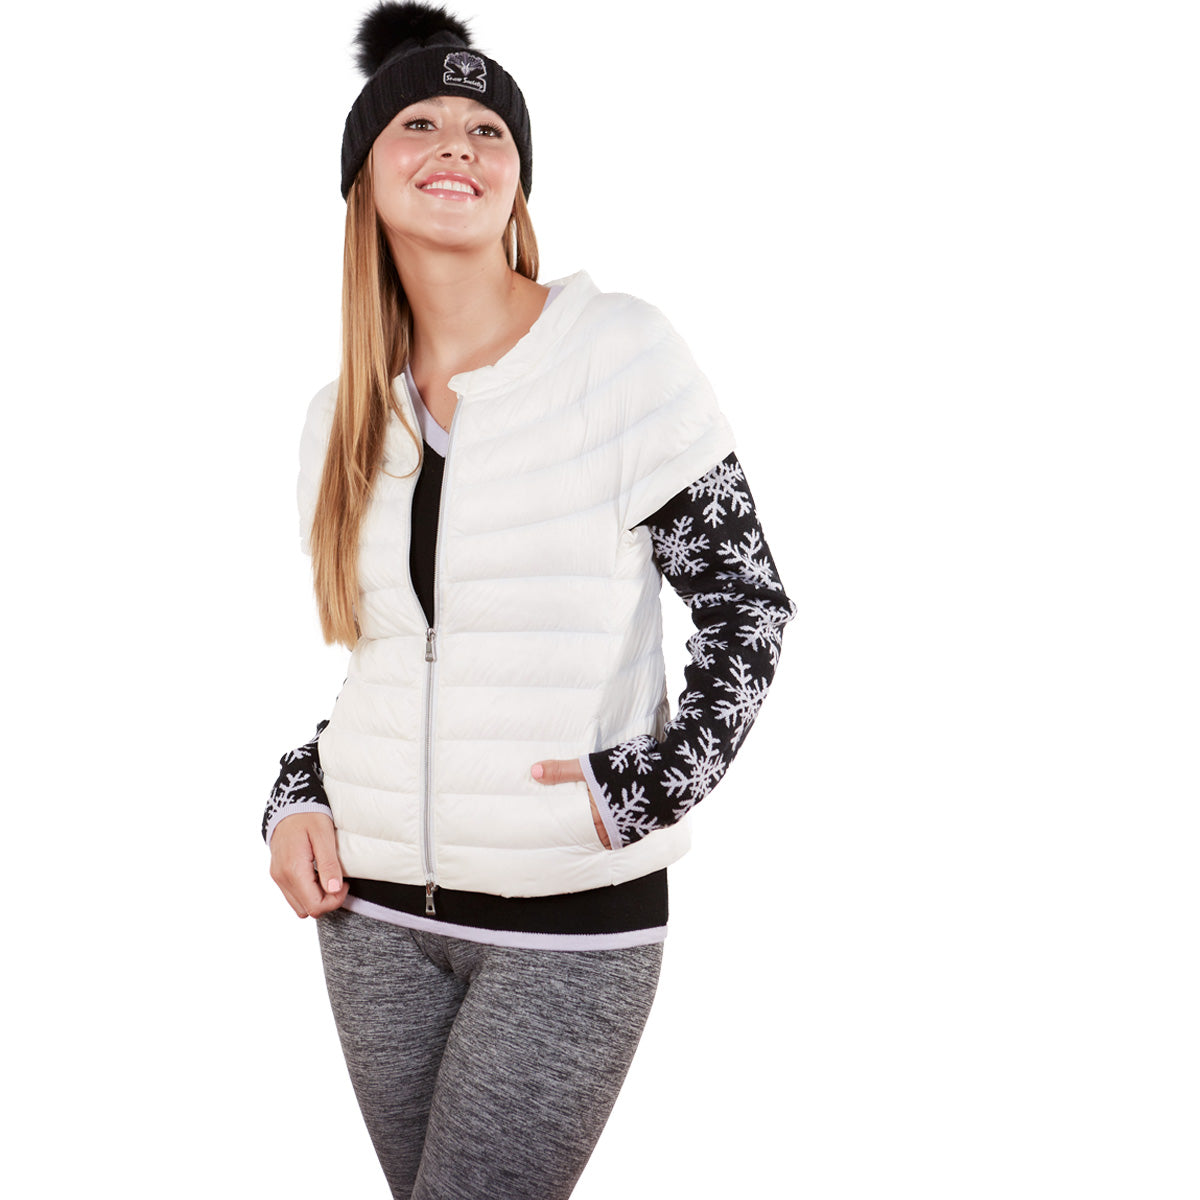 The Arlberg Black Diamond Women's Sweater